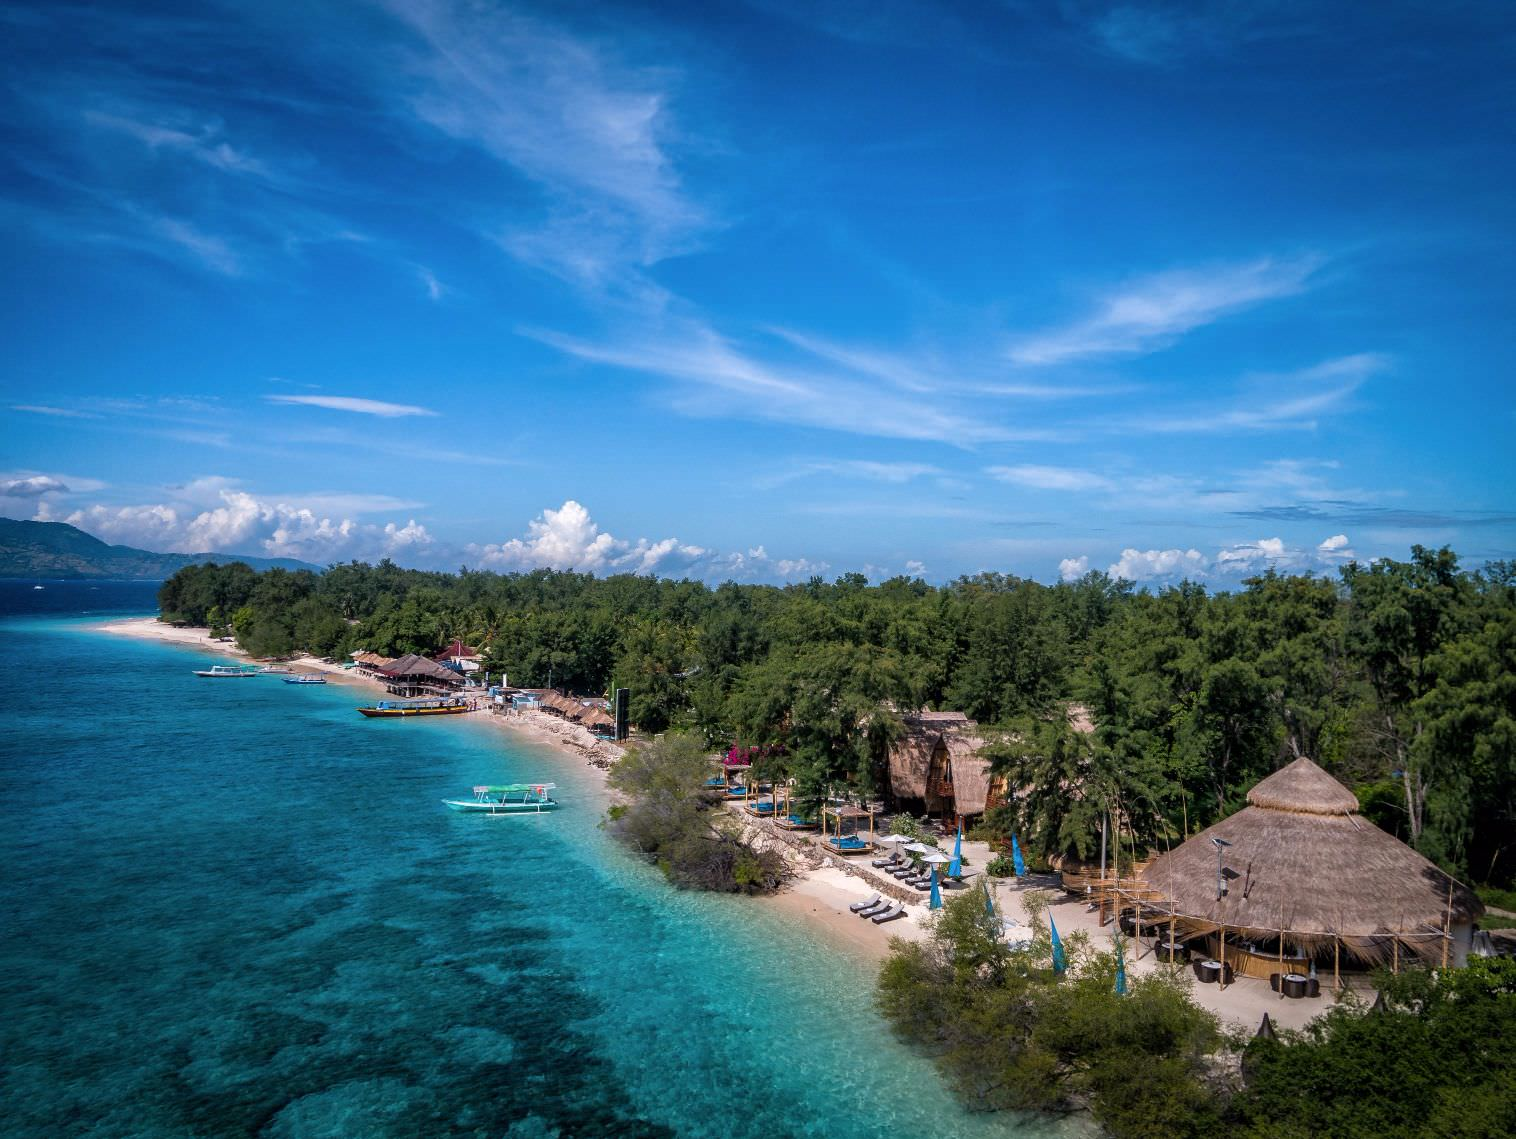 great holiday with blue ocean Luxury Hotels Karma Reef view in Lombok